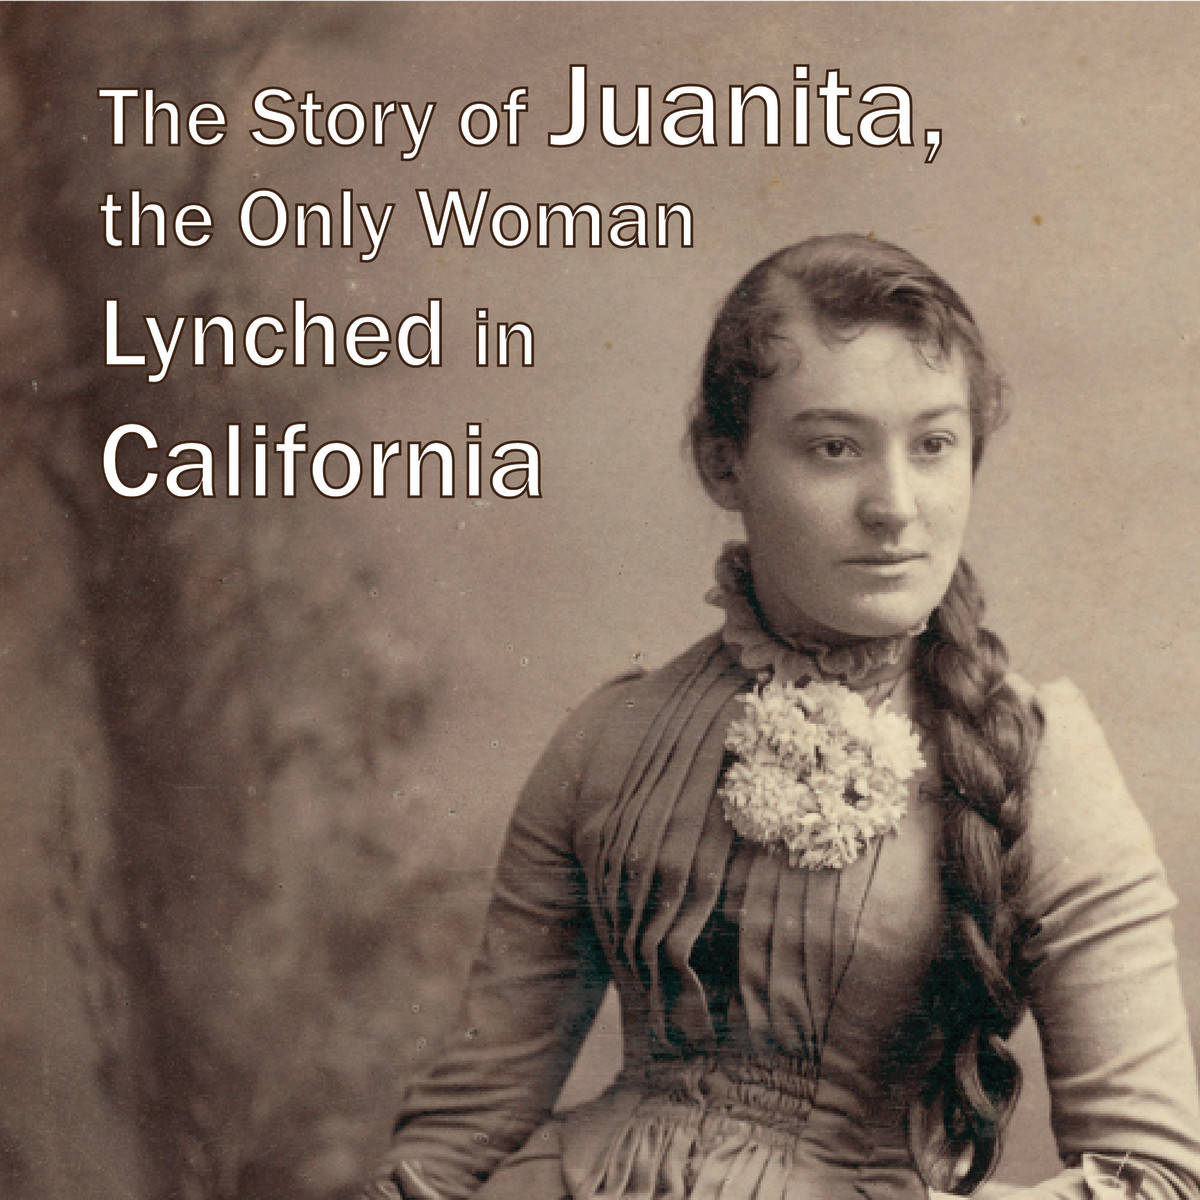 The Hanging of Juanita: The Only Woman to be Lynched in California